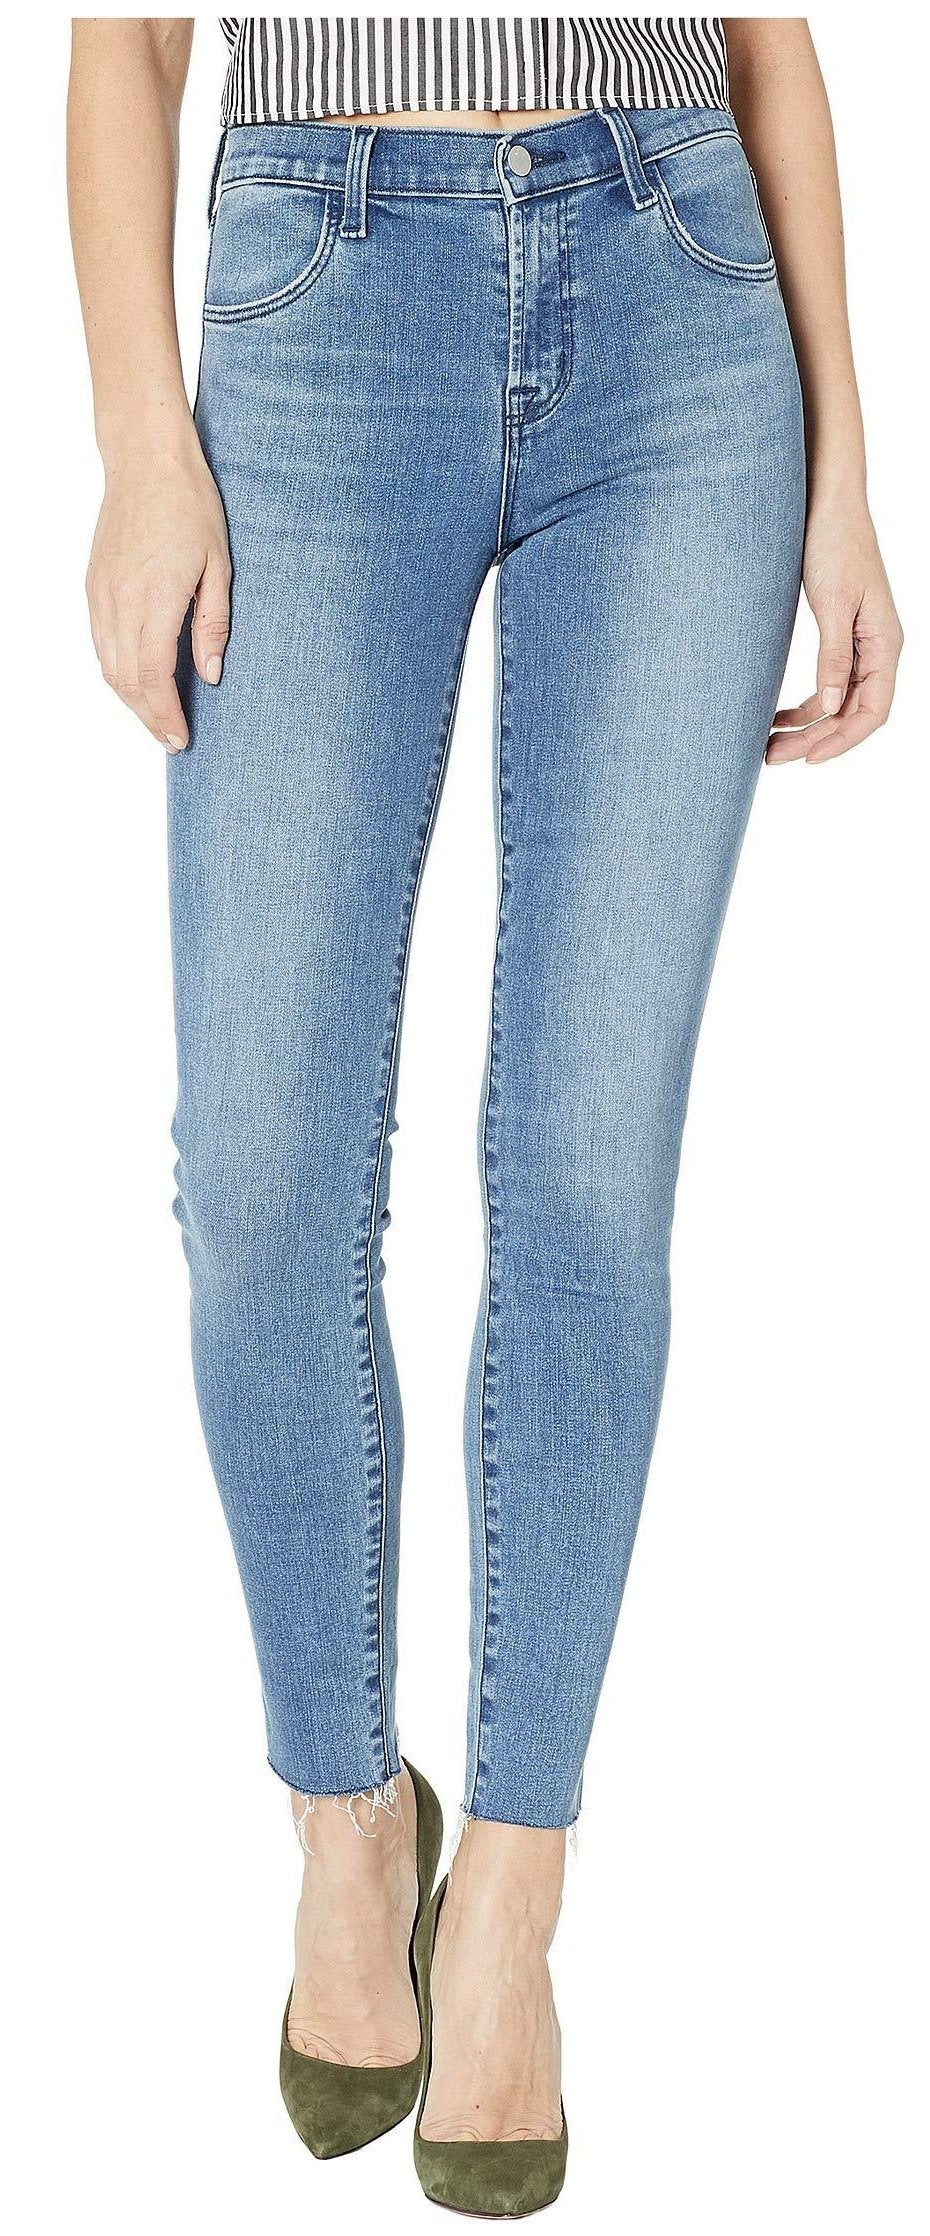 J Brand Maria High Rise Skinny in Vega Wash JB001978